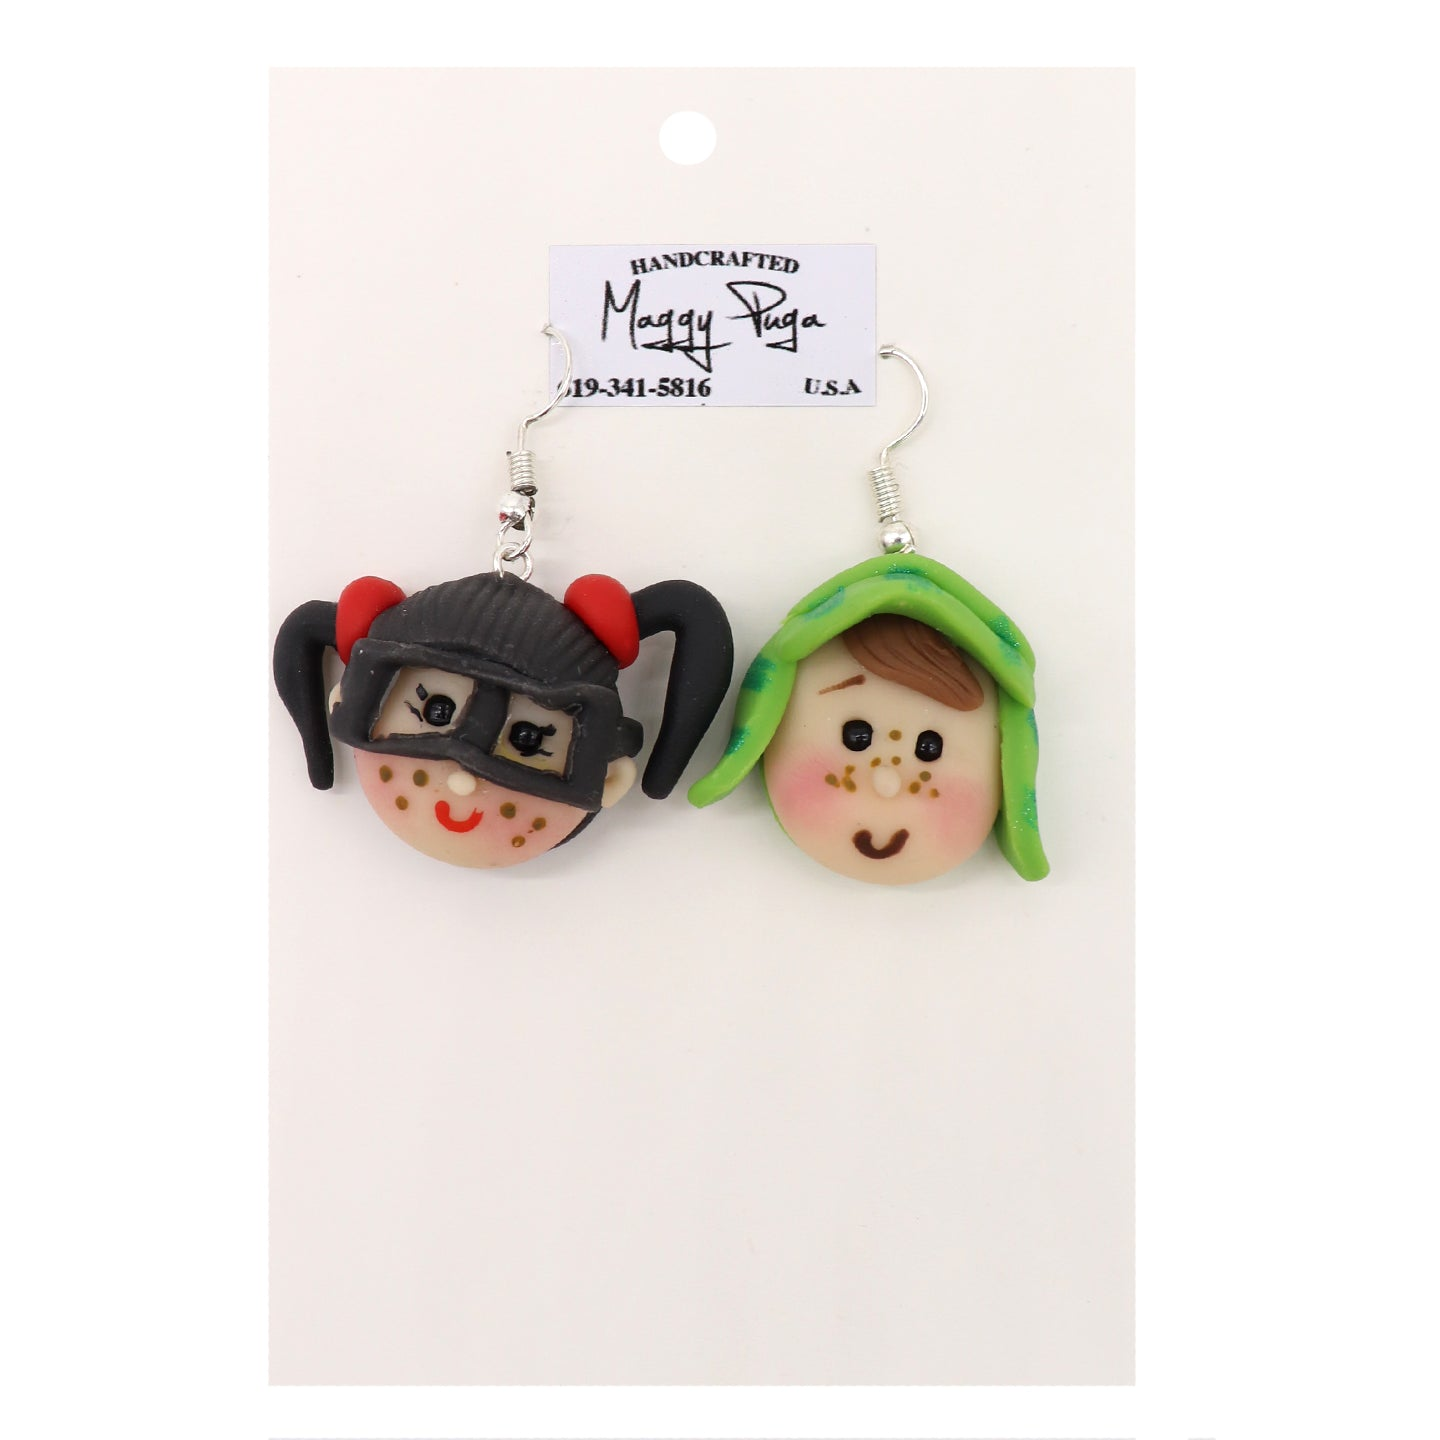 La chilindrian and El Chavo earrings from iconic Mexican TV series El Chavo del Ocho. Handcrafted with intricate details to resemble the characters. Made by small shop Maggy Puga and Sold by SDTrading Co.